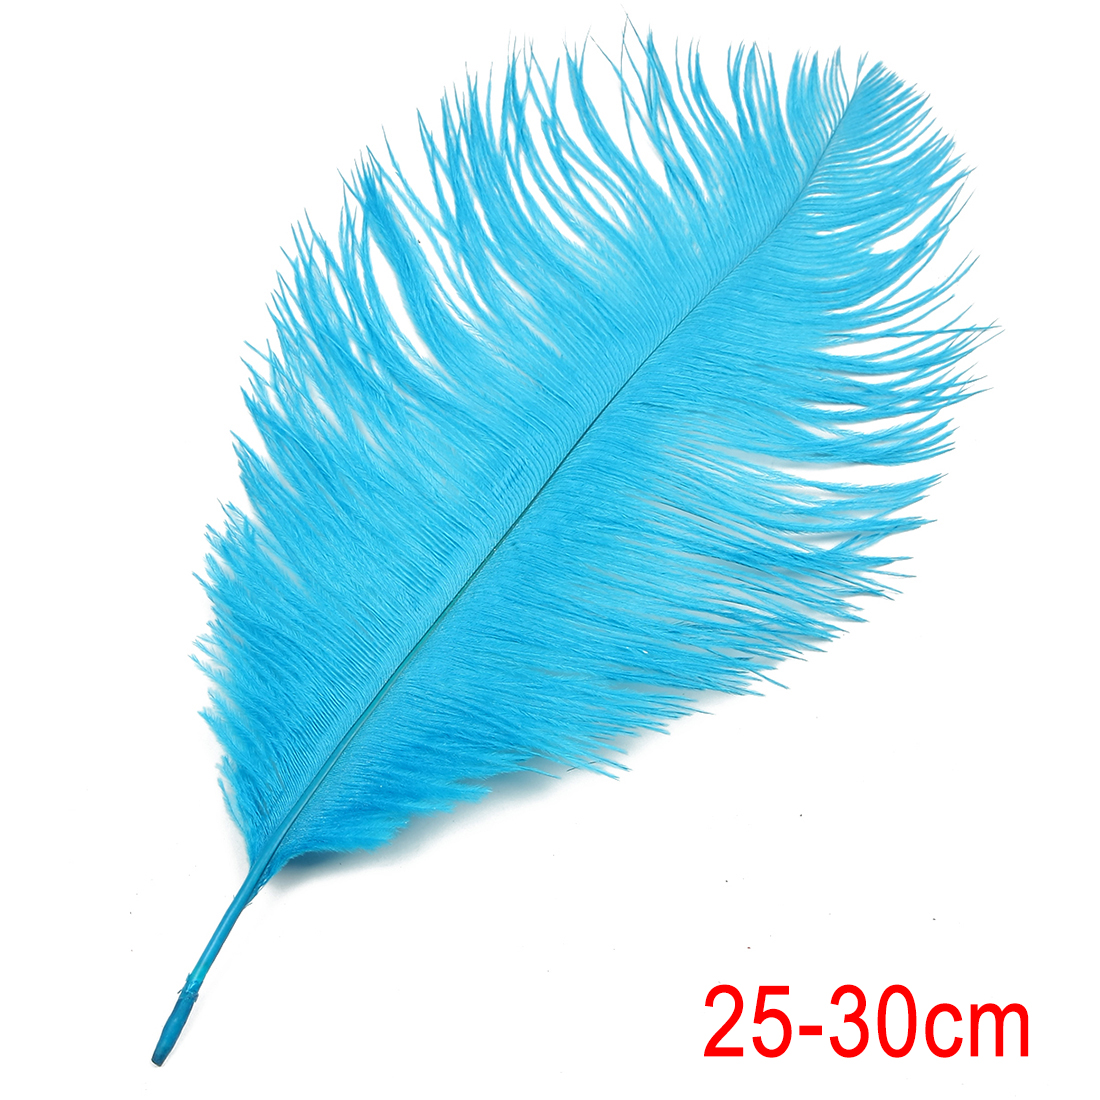 10-12 inch / 25-30cm Ostrich Feather for Wedding Party Decoration Blue